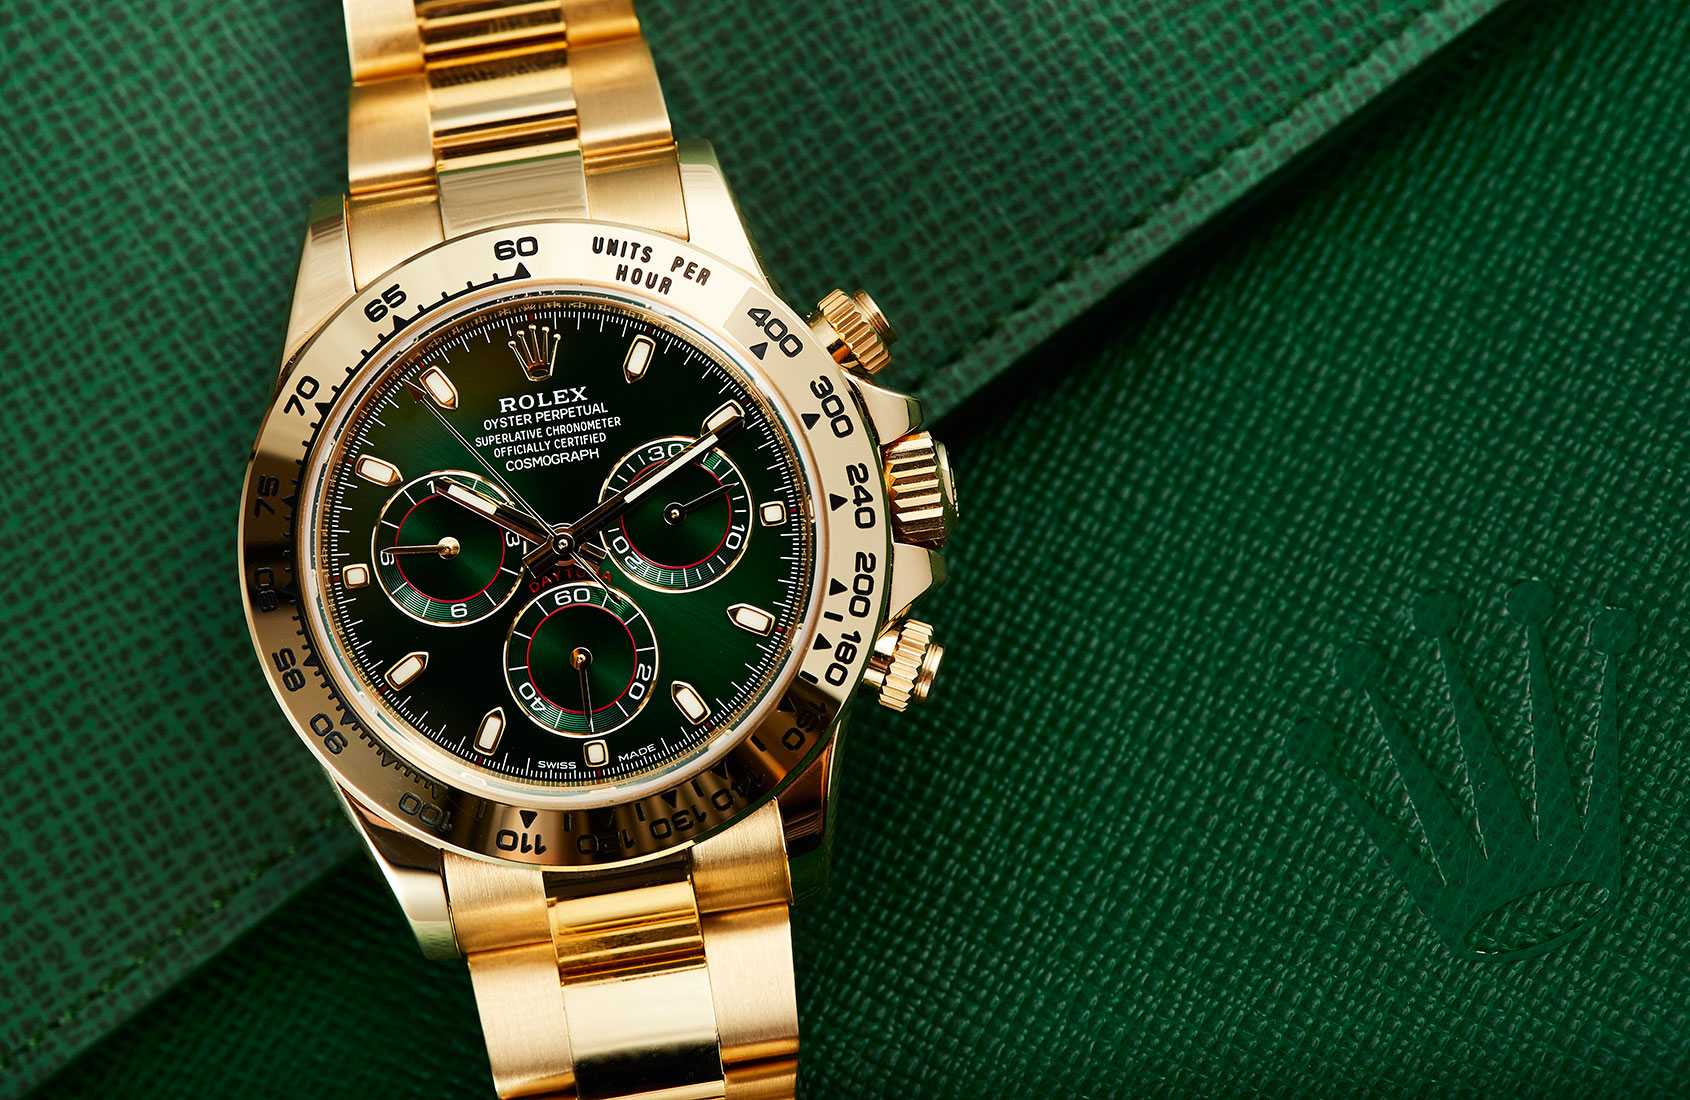 HANDS-ON: Everlasting lustre – the Rolex Daytona in yellow ...